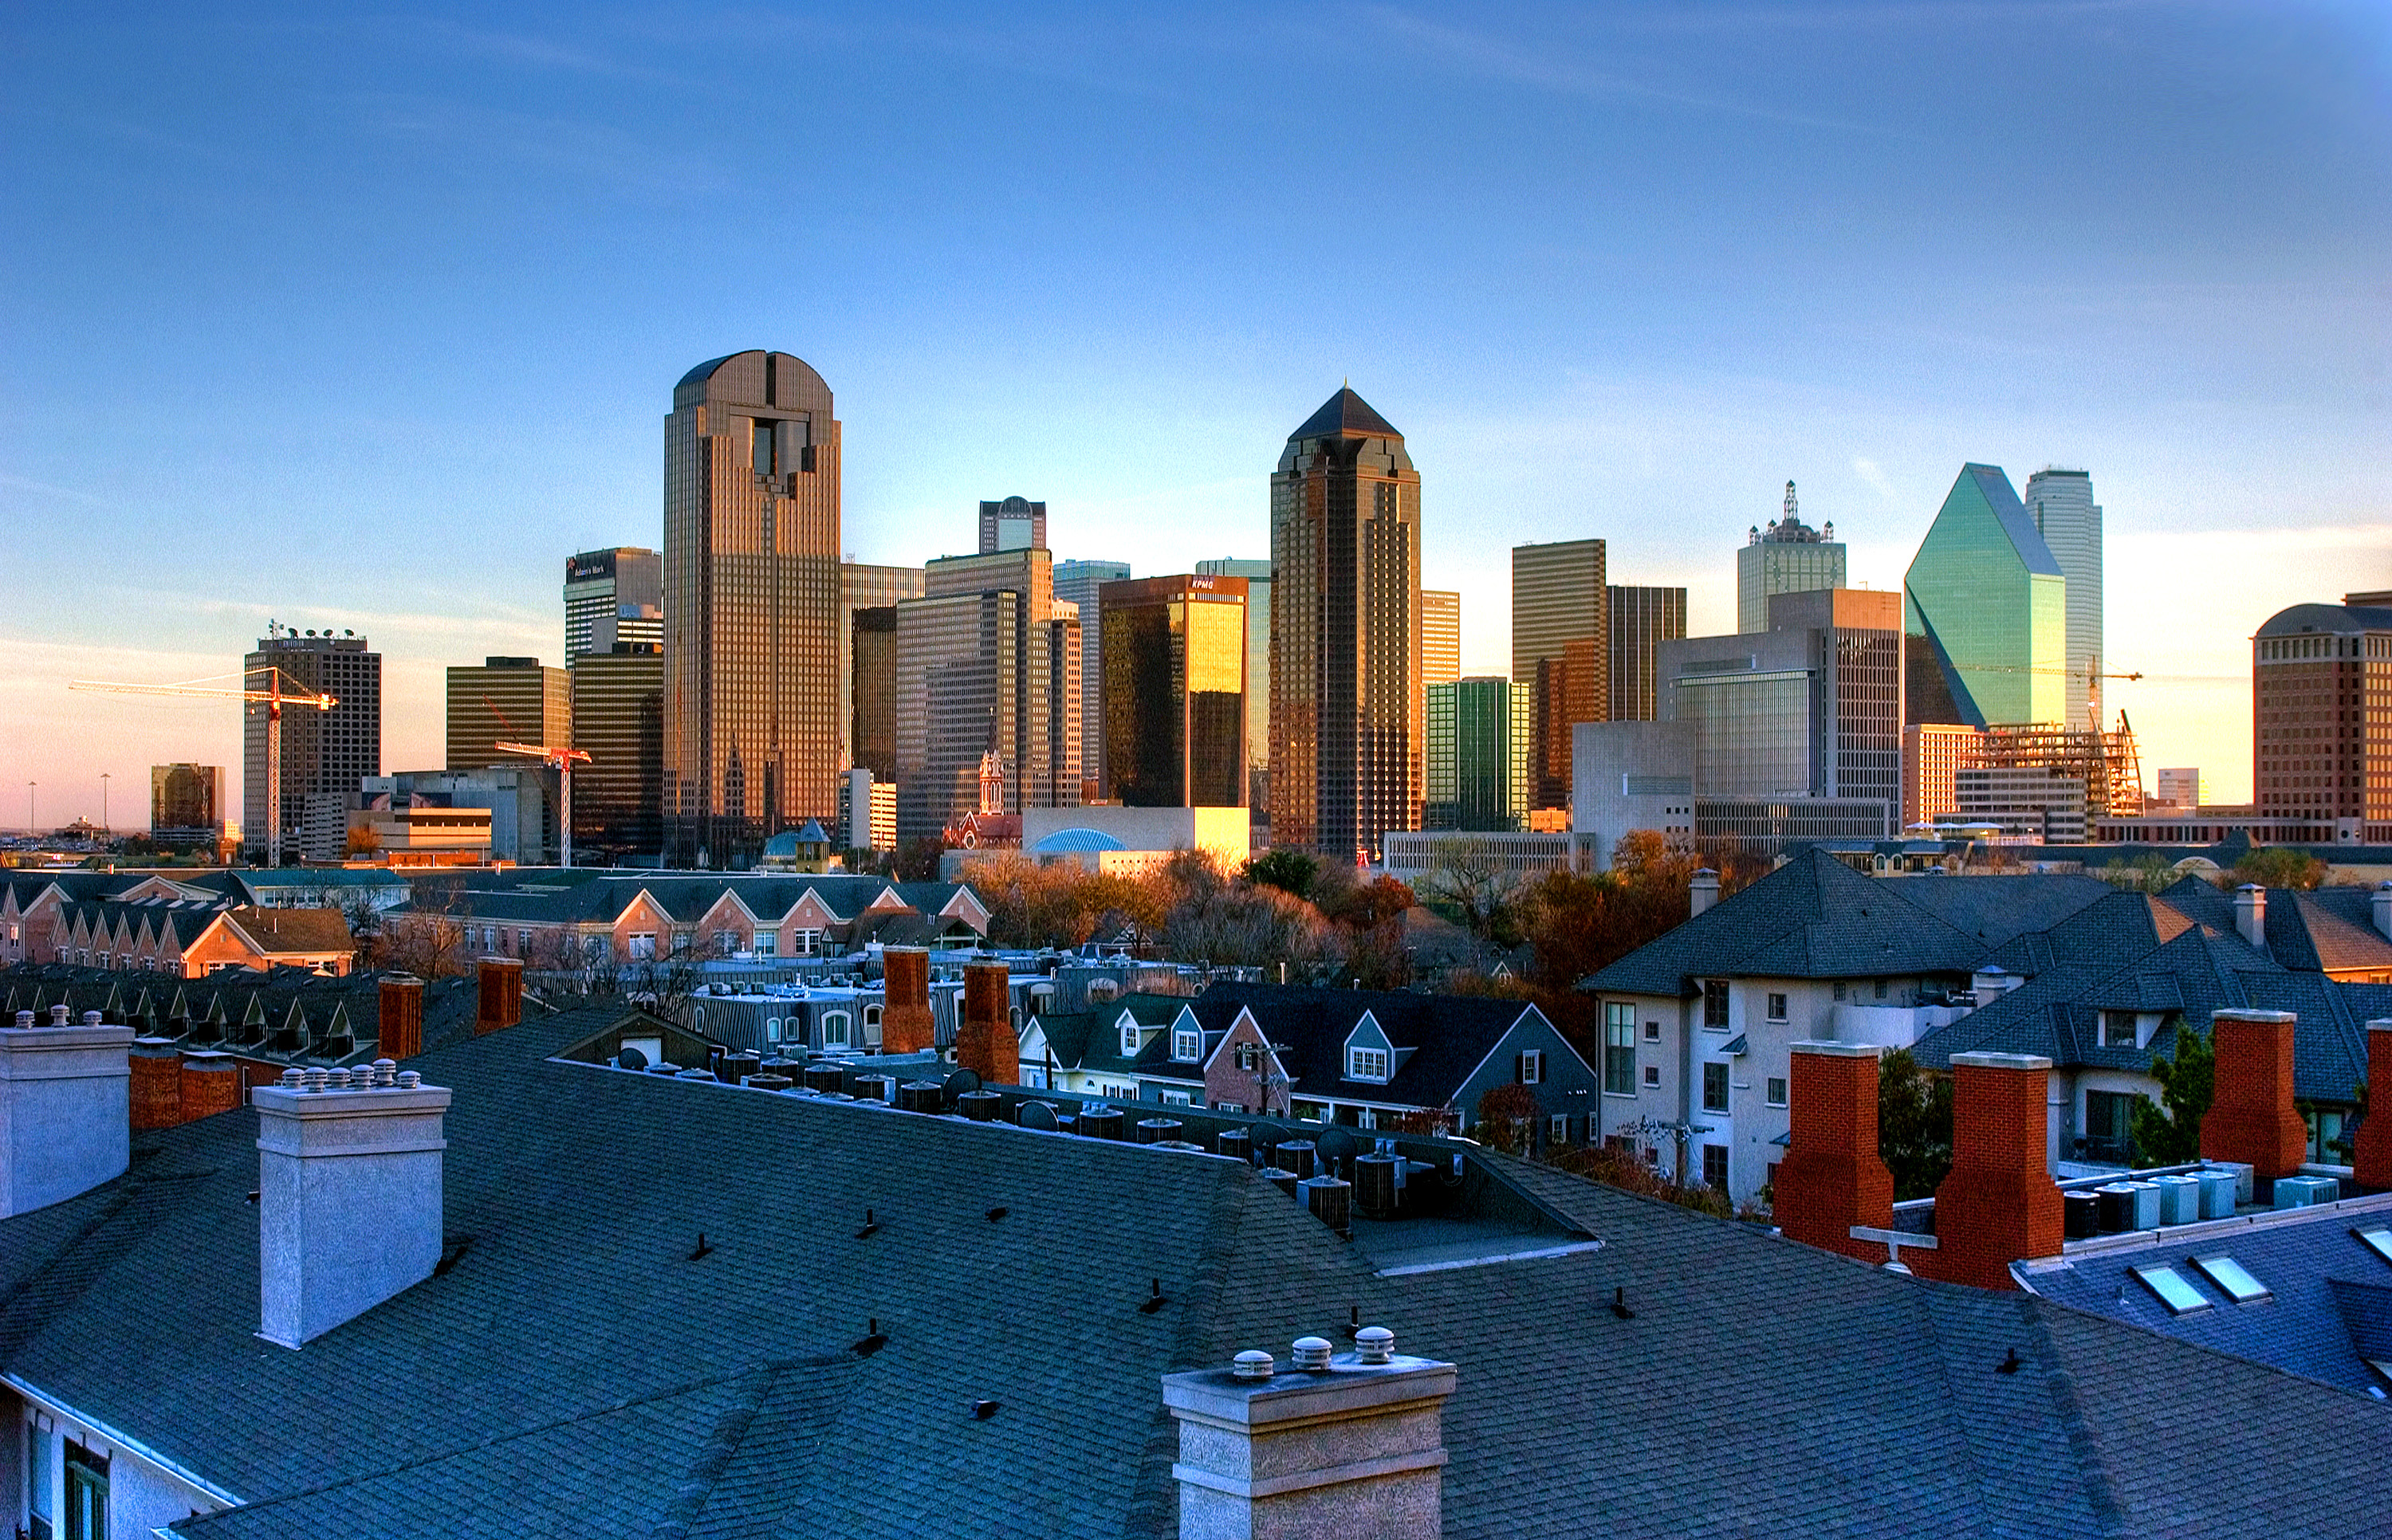 thesis dallas tx Career opportunities in addition to the option of becoming an academic, there are many exciting career opportunities for applied anthropologists.